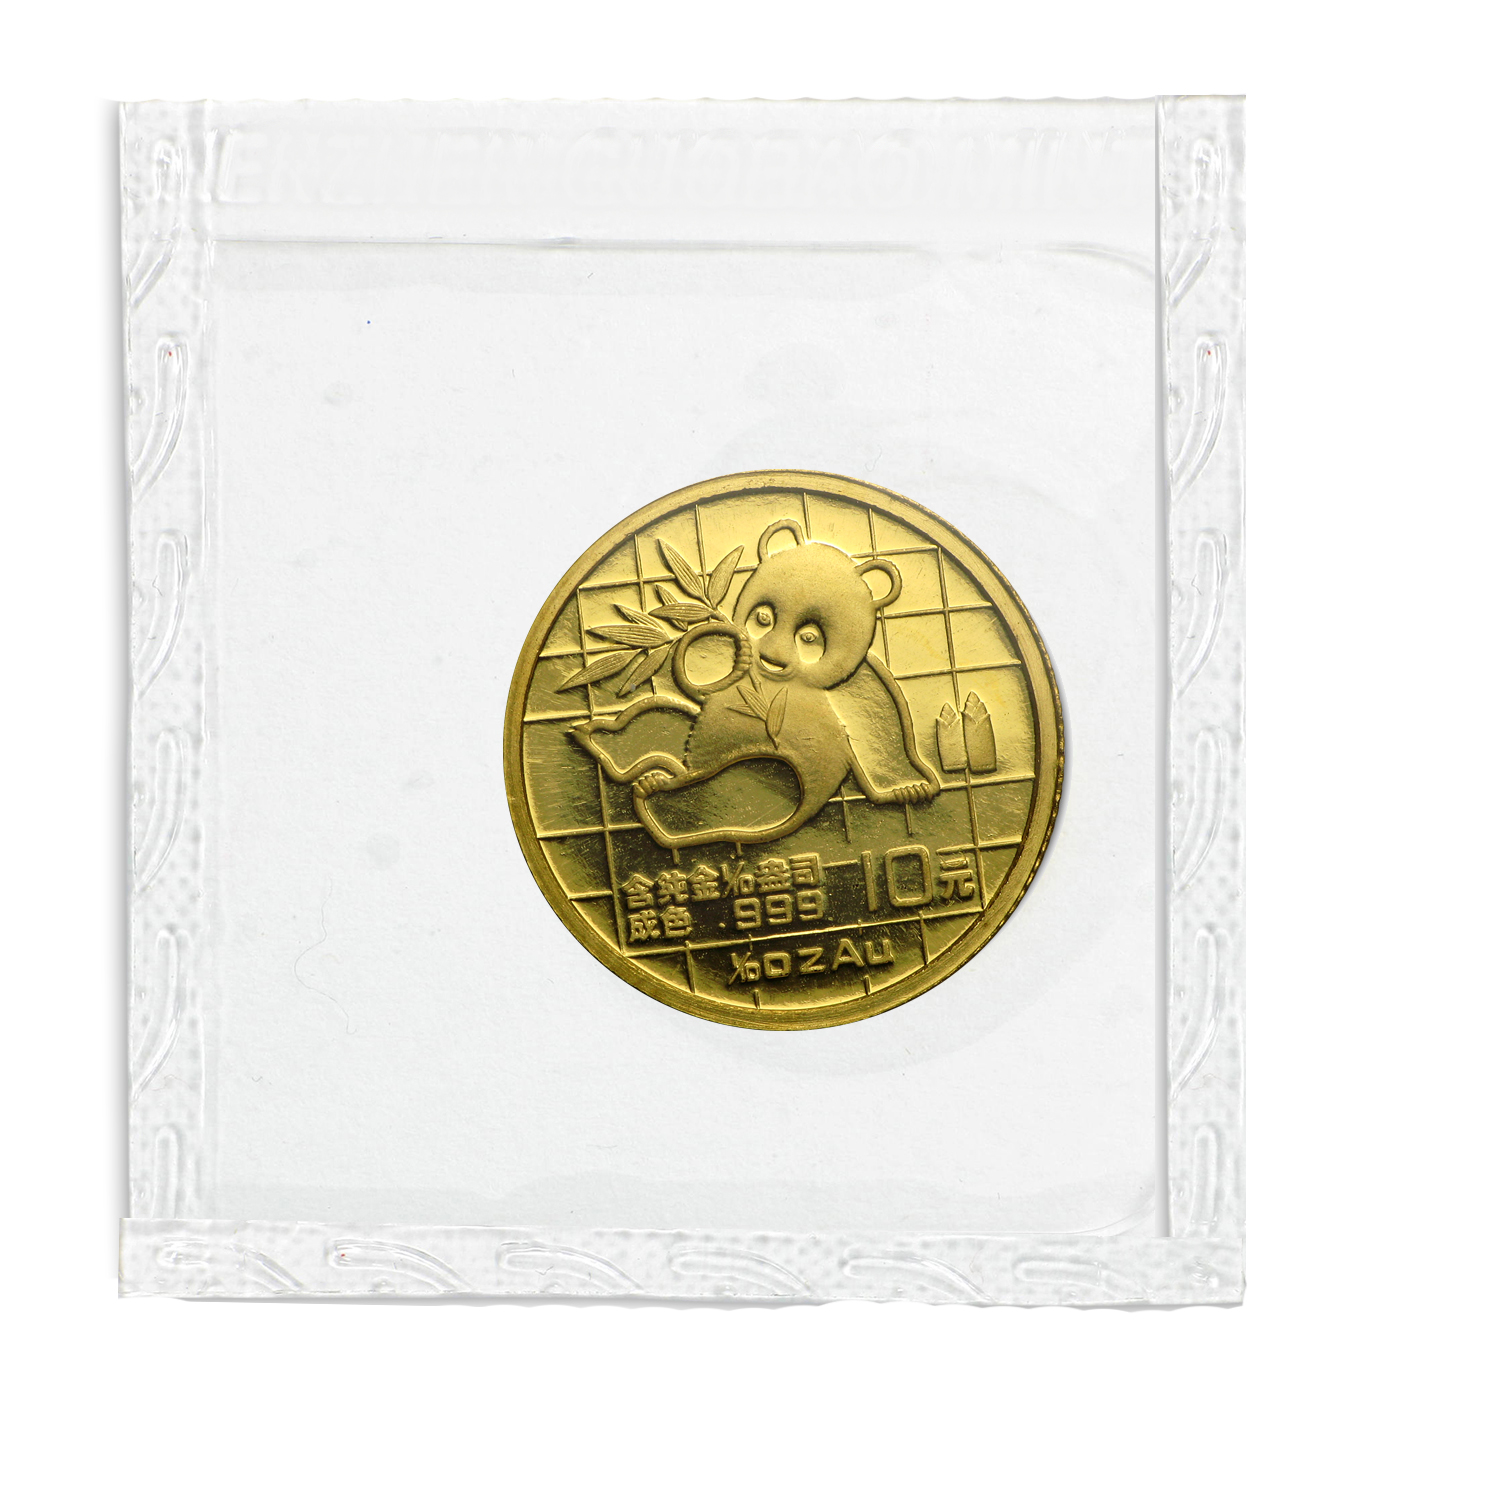 1989 China 1/10 oz Gold Panda Small Date BU (Sealed)